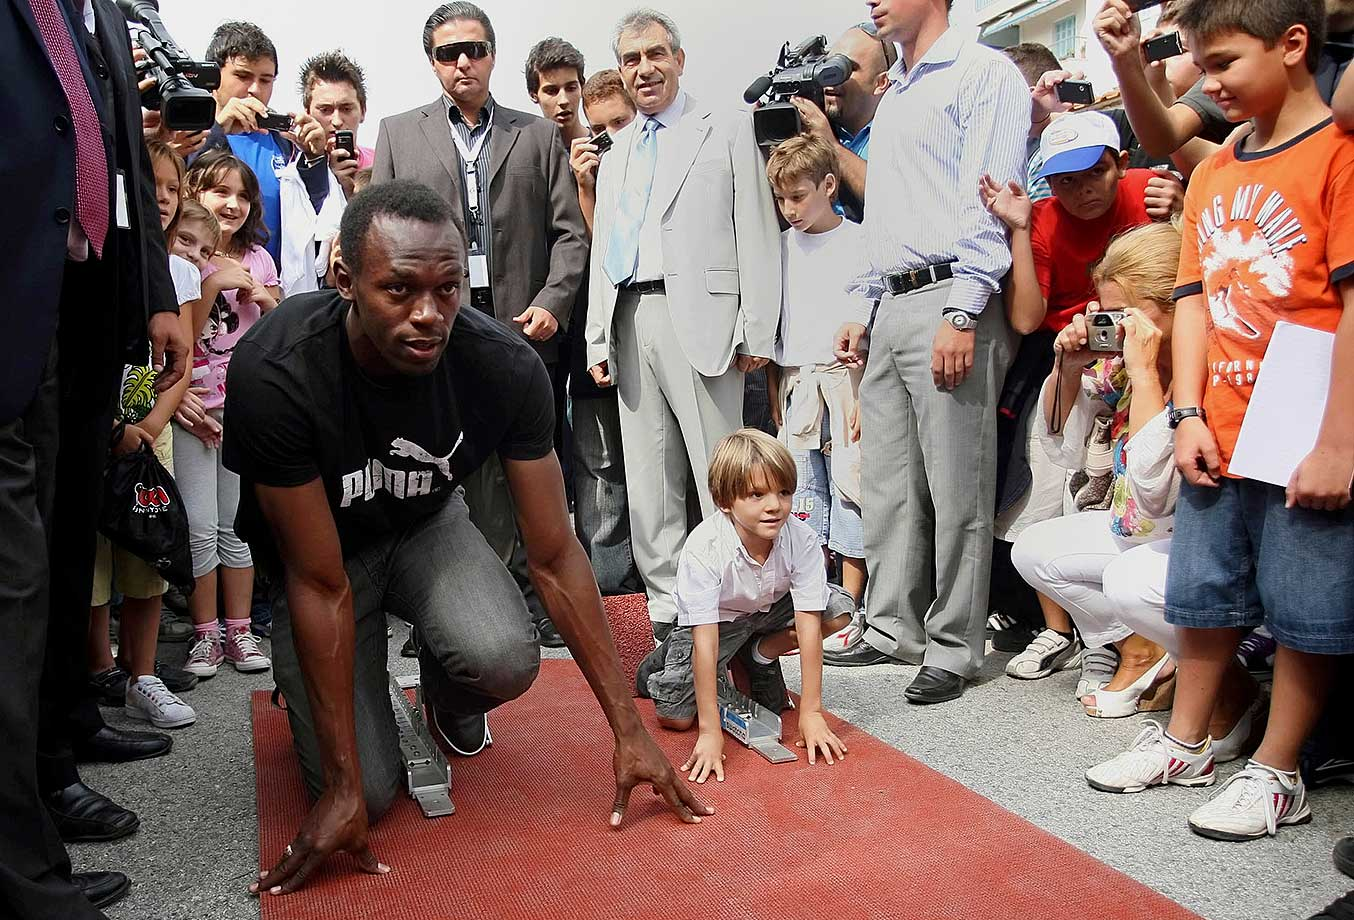 Bolt lines up in a starting position alongside a young boy in Thessaloniki, Greece. Bolt competed in the 200 during the world championships a couple days later, setting a track record of 19.68 and taking home a gold medal.